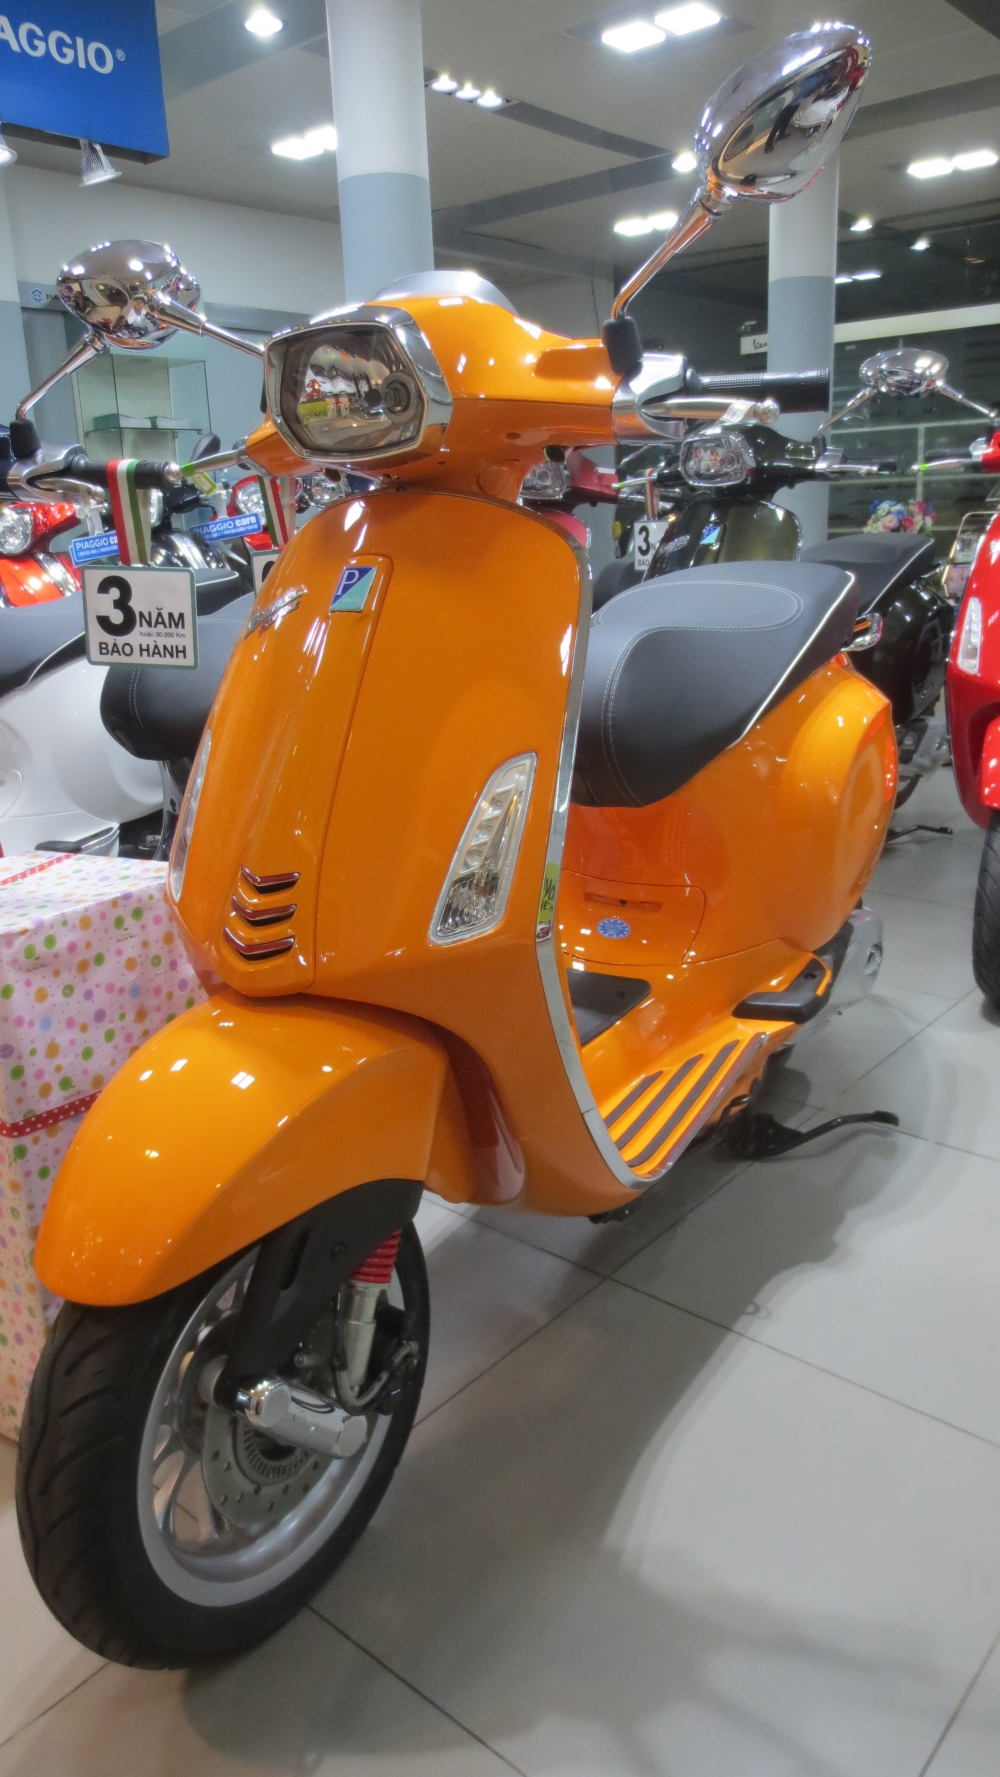 VESPA Sprint ABS chinh hang gia re nhat SG - 12